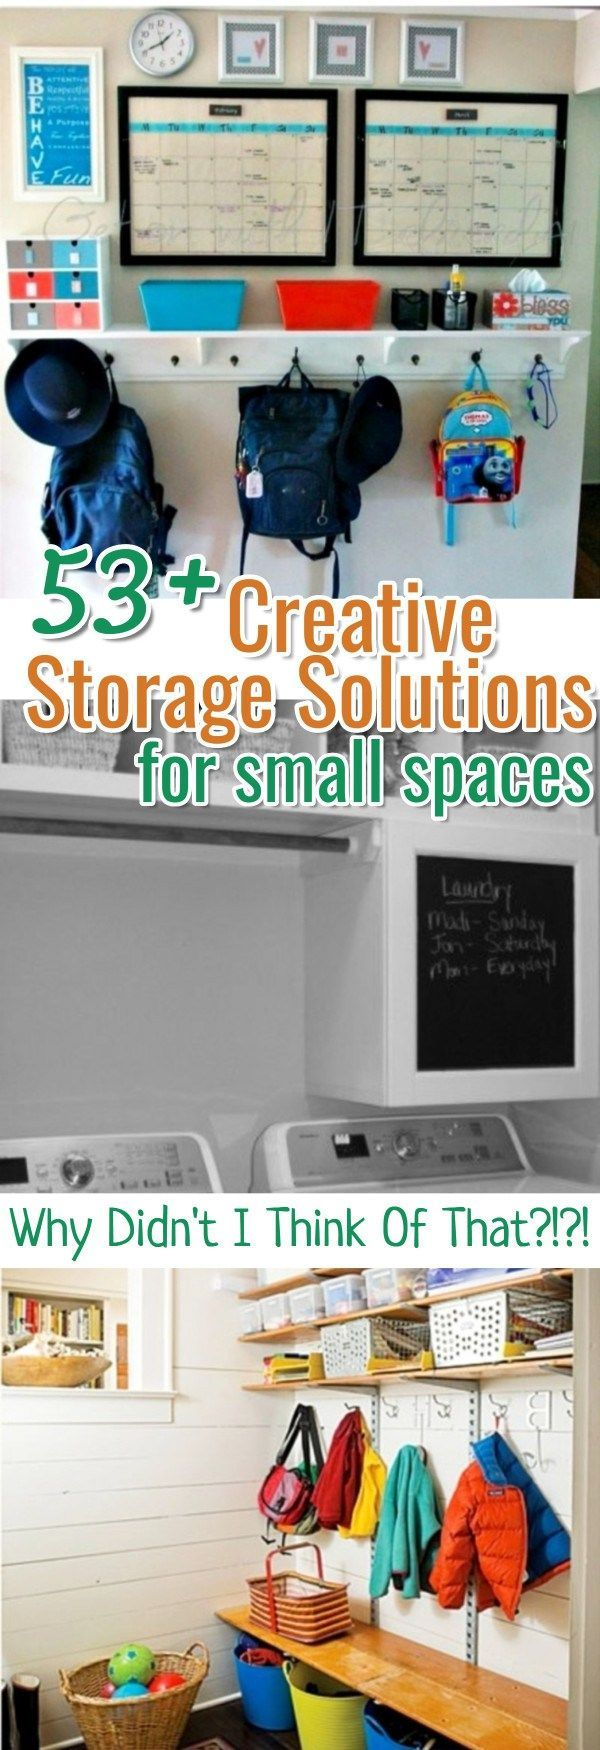 DIY storage ideas for small spaces - create small space hacks